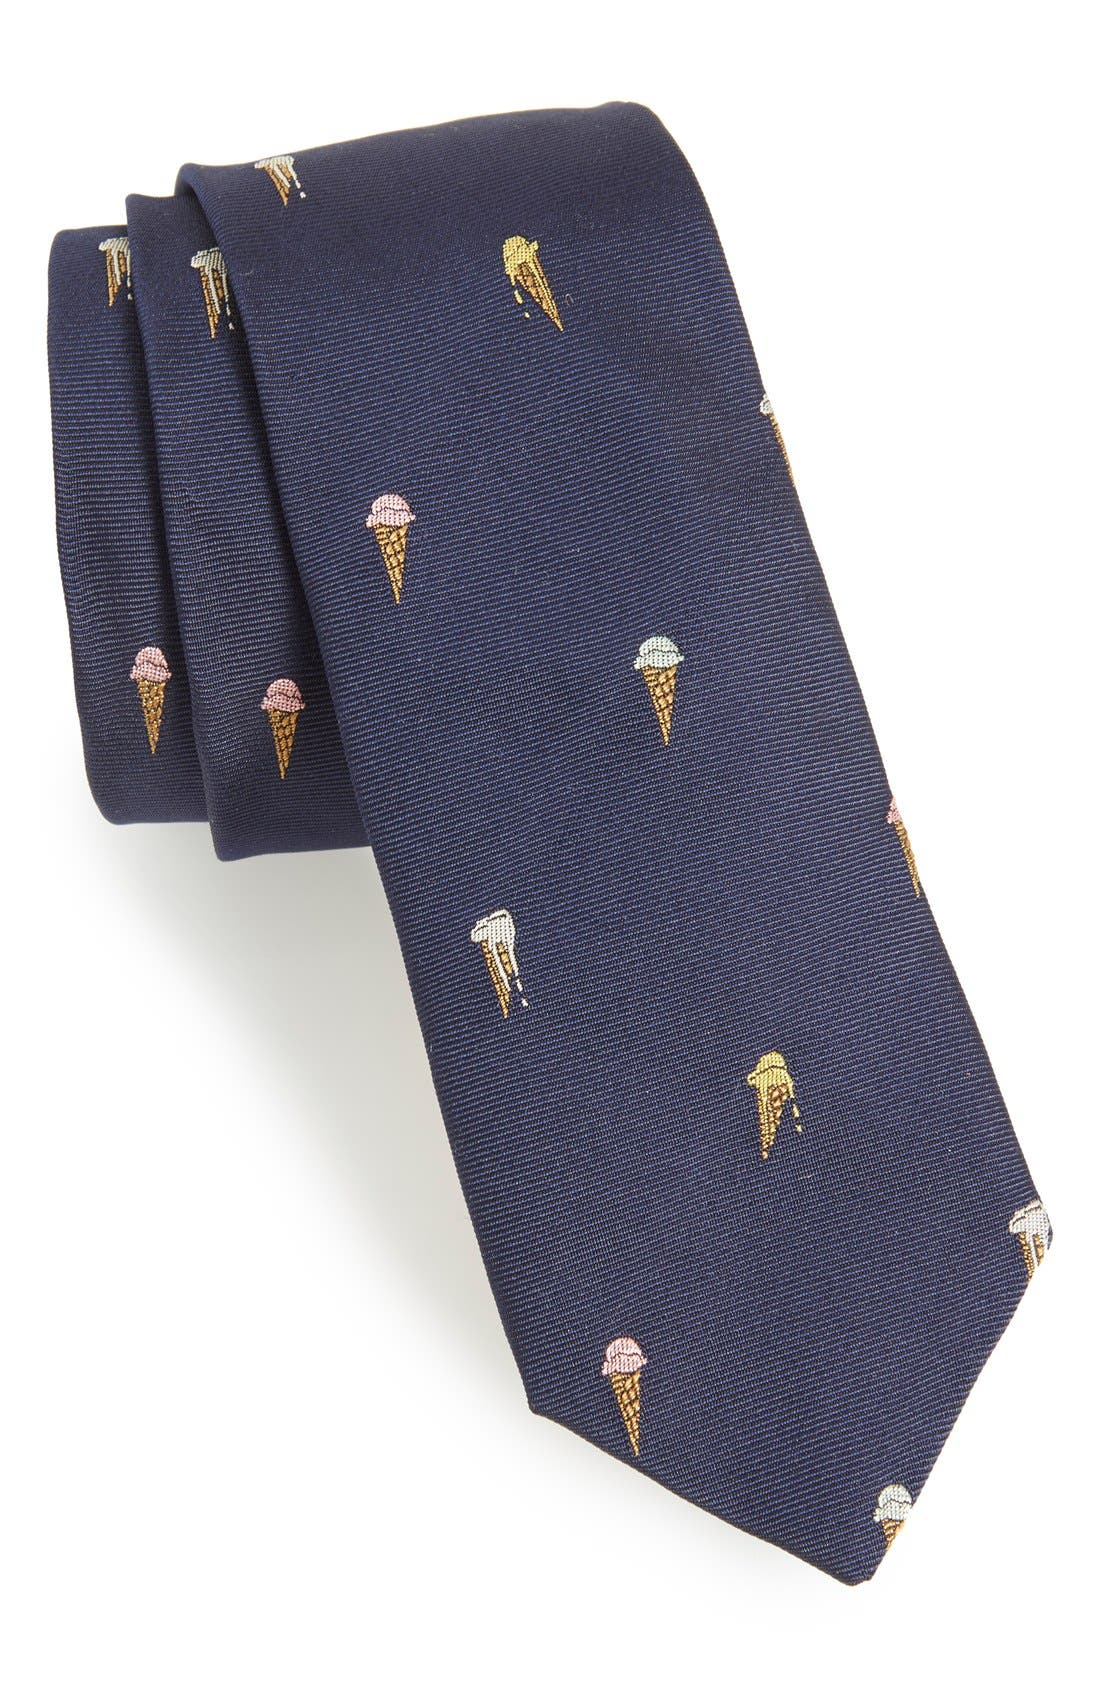 PAUL SMITH,                             Ice Cream Cone Silk Tie,                             Main thumbnail 1, color,                             414